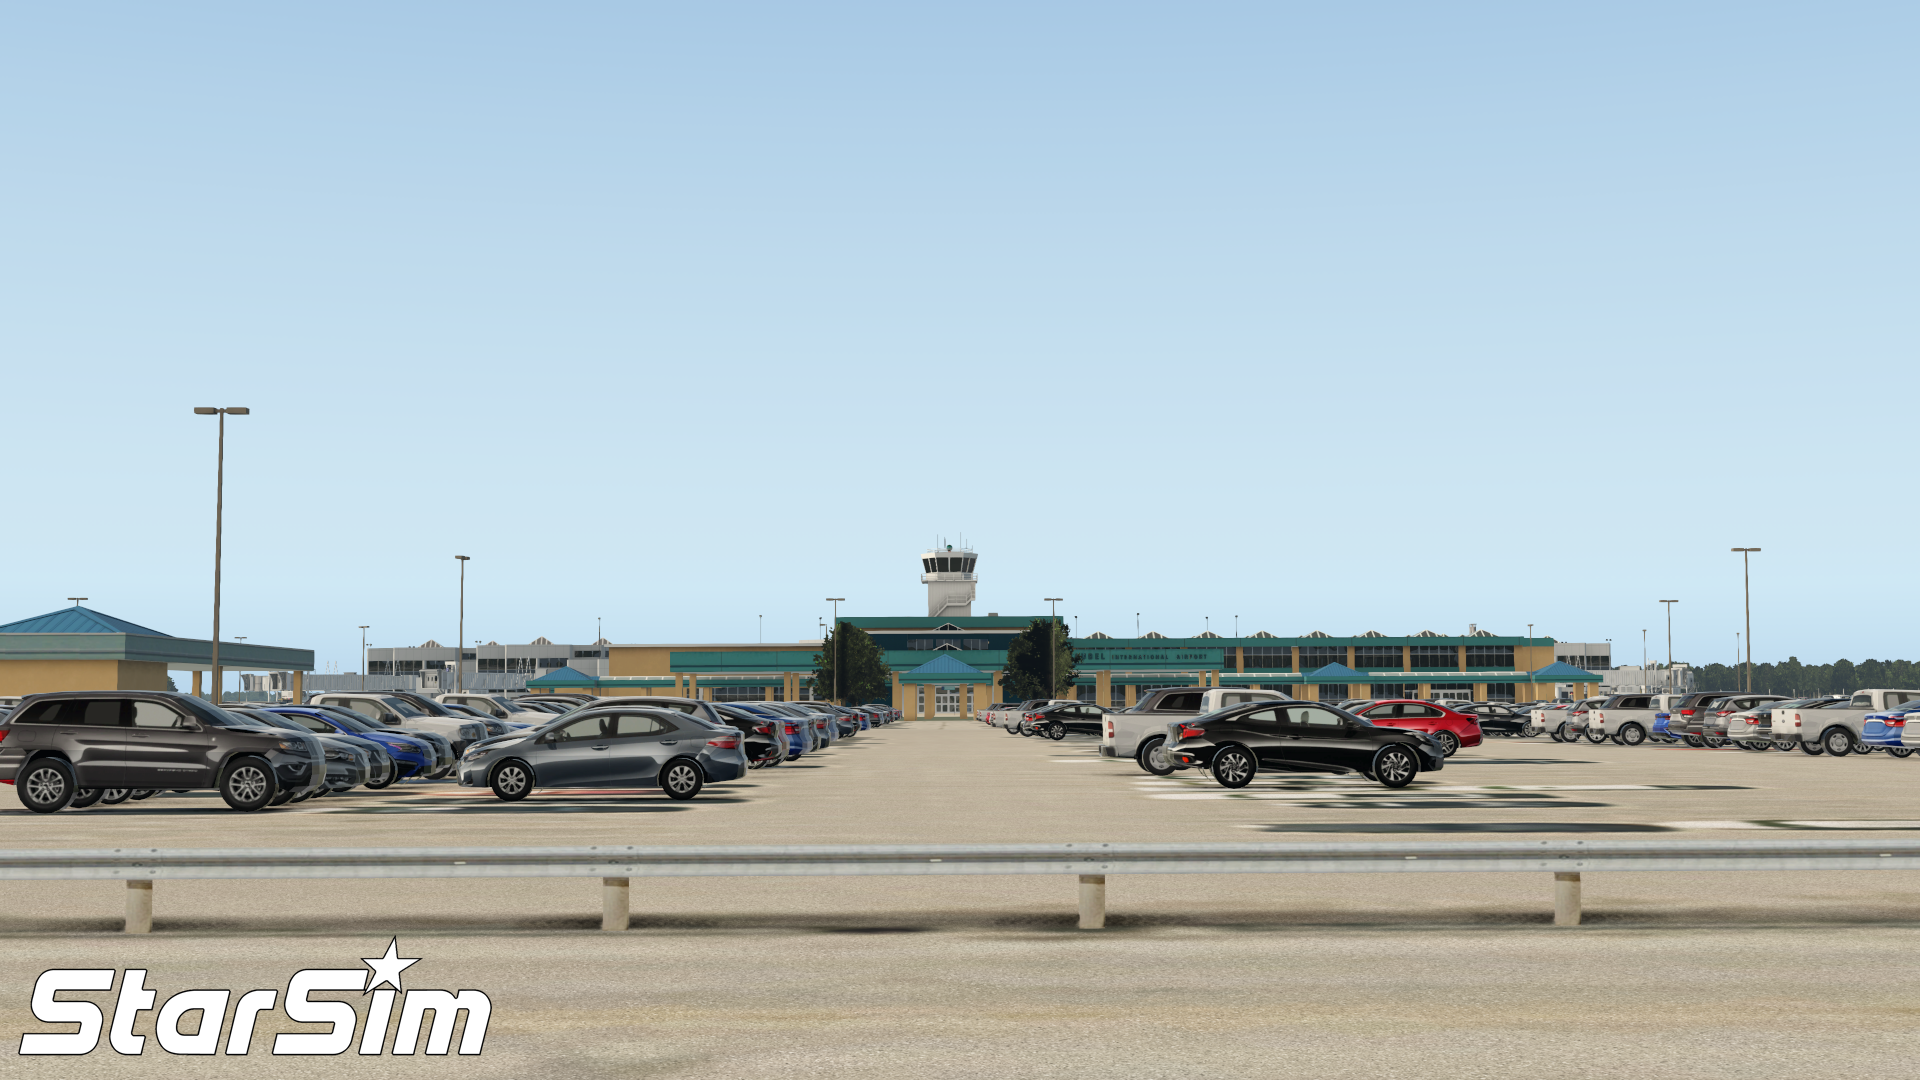 STARSIM - KGRB - GREEN BAY - AUSTIN STRAUBEL INTERNATIONAL AIRPORT X-PLANE 11